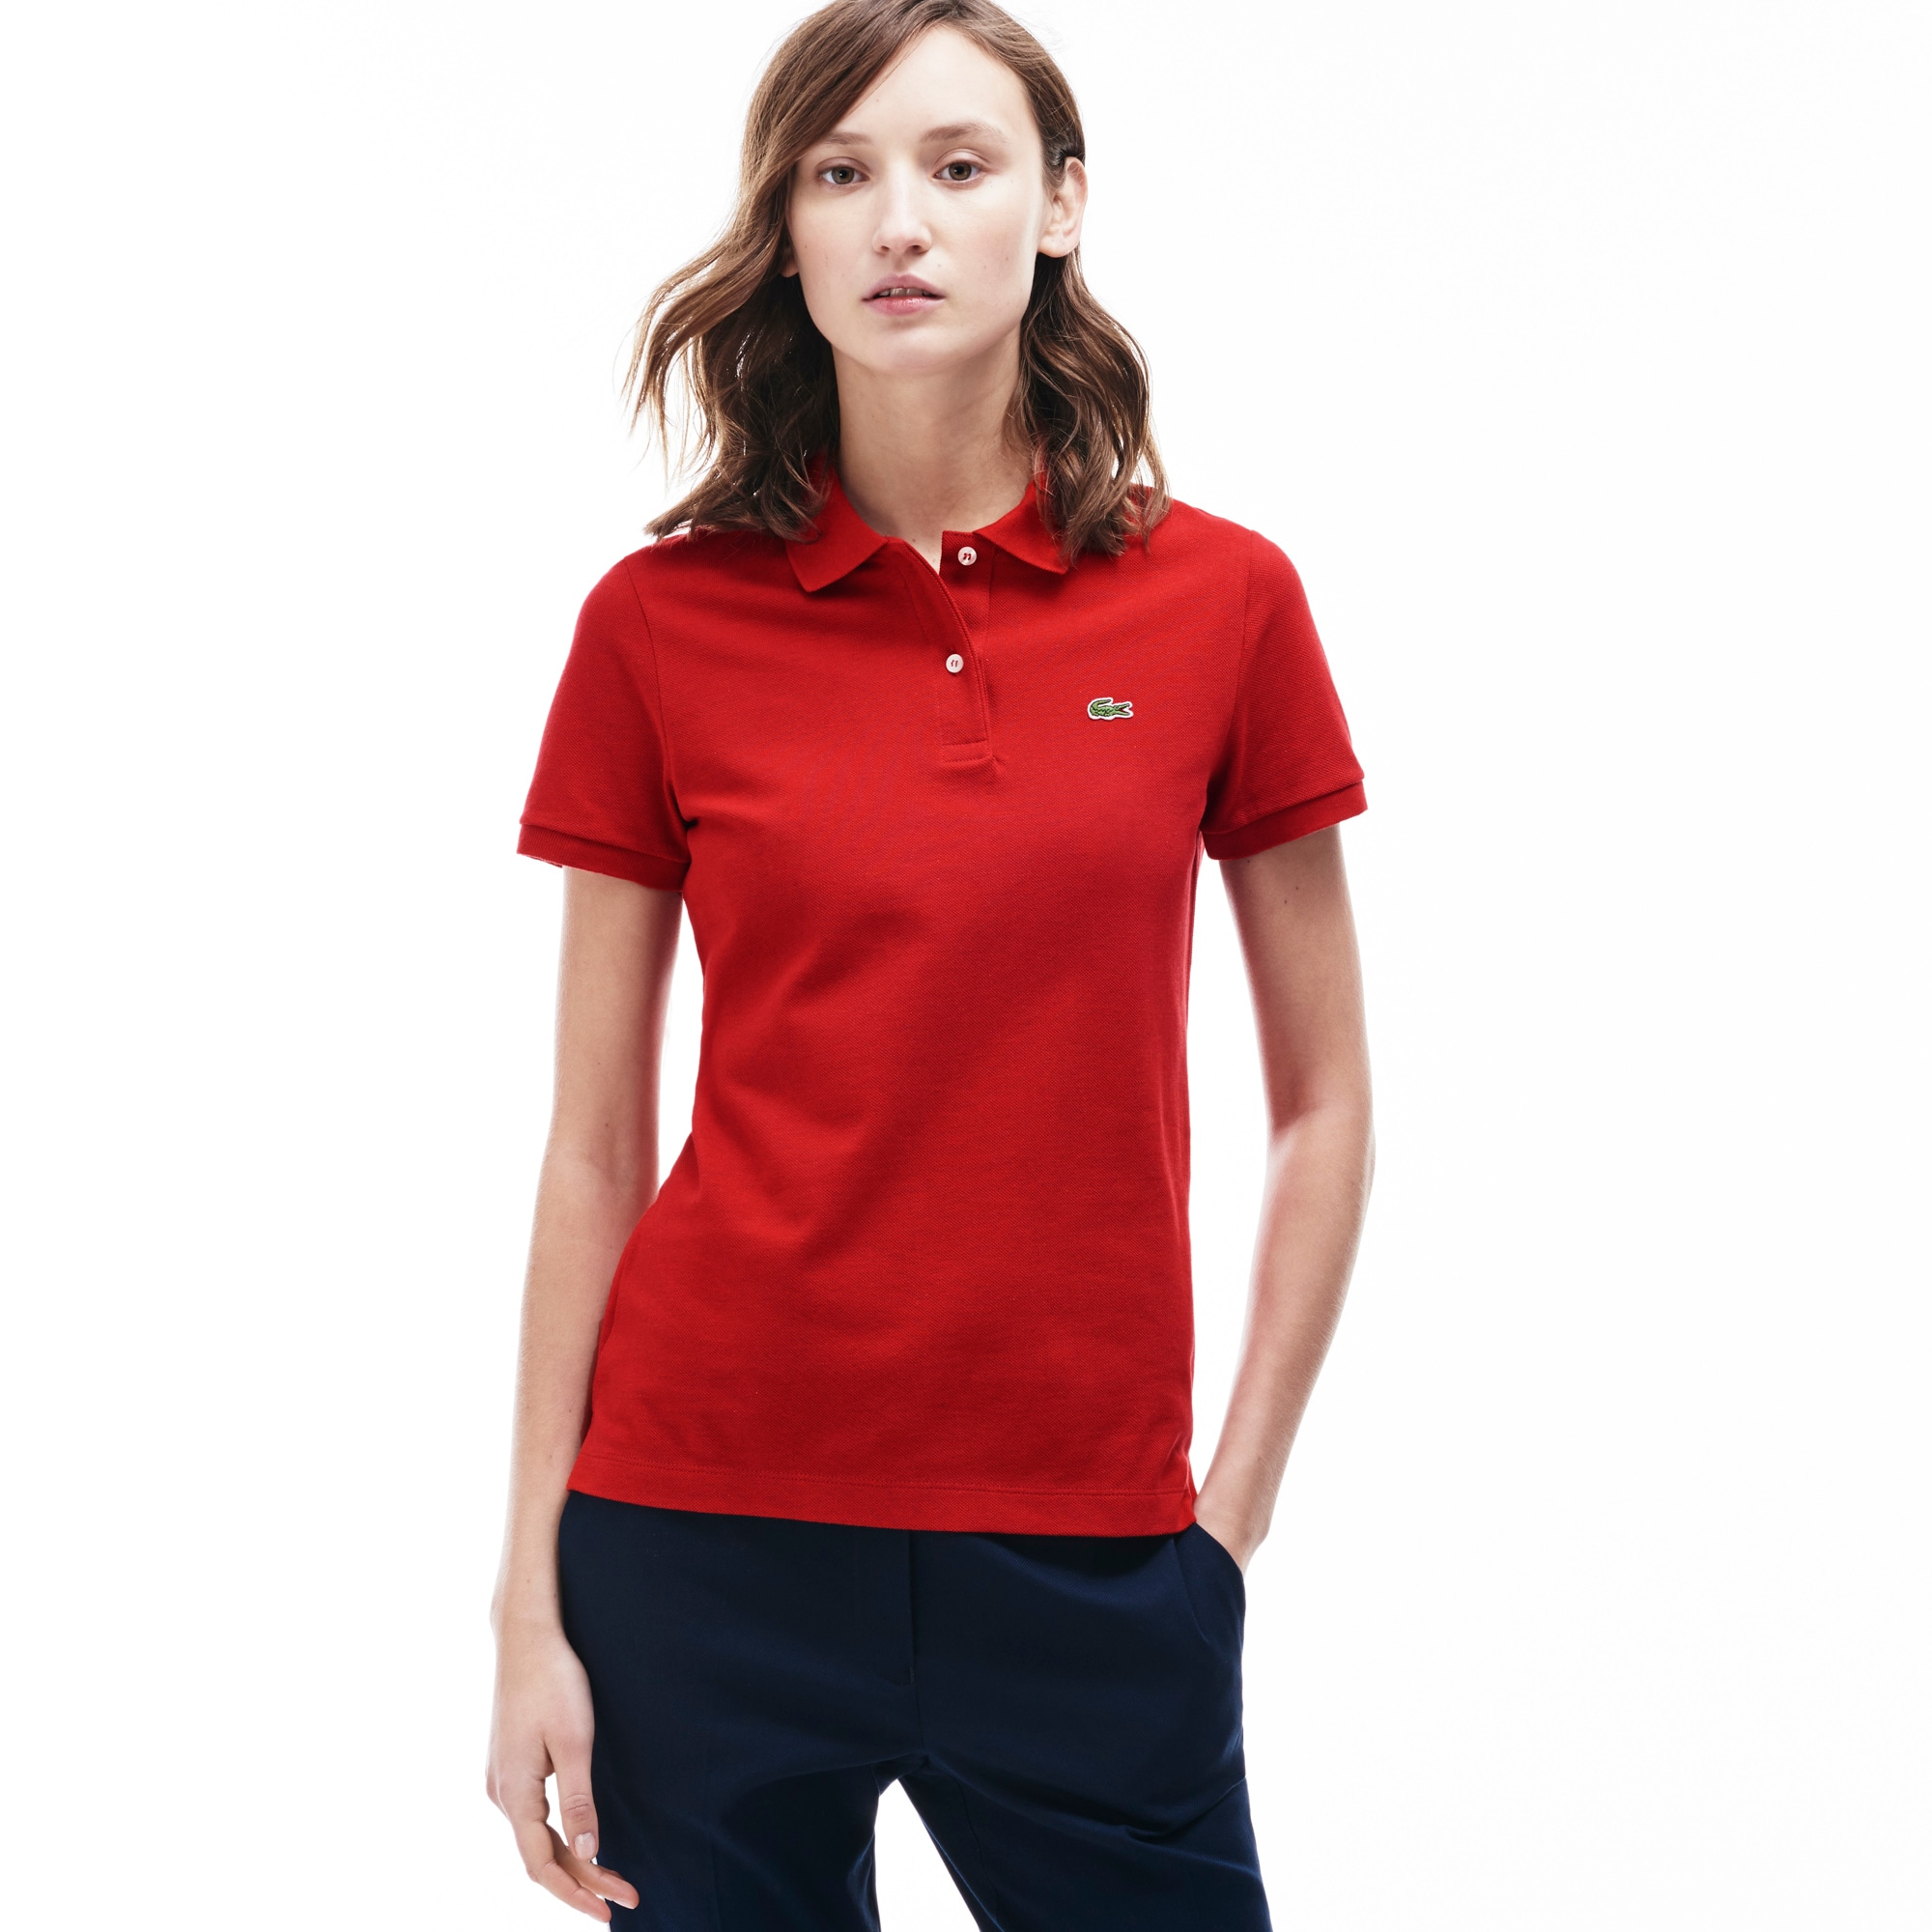 Polo Shirts for Women | Lacoste Women's Polo Shirts | LACOSTE